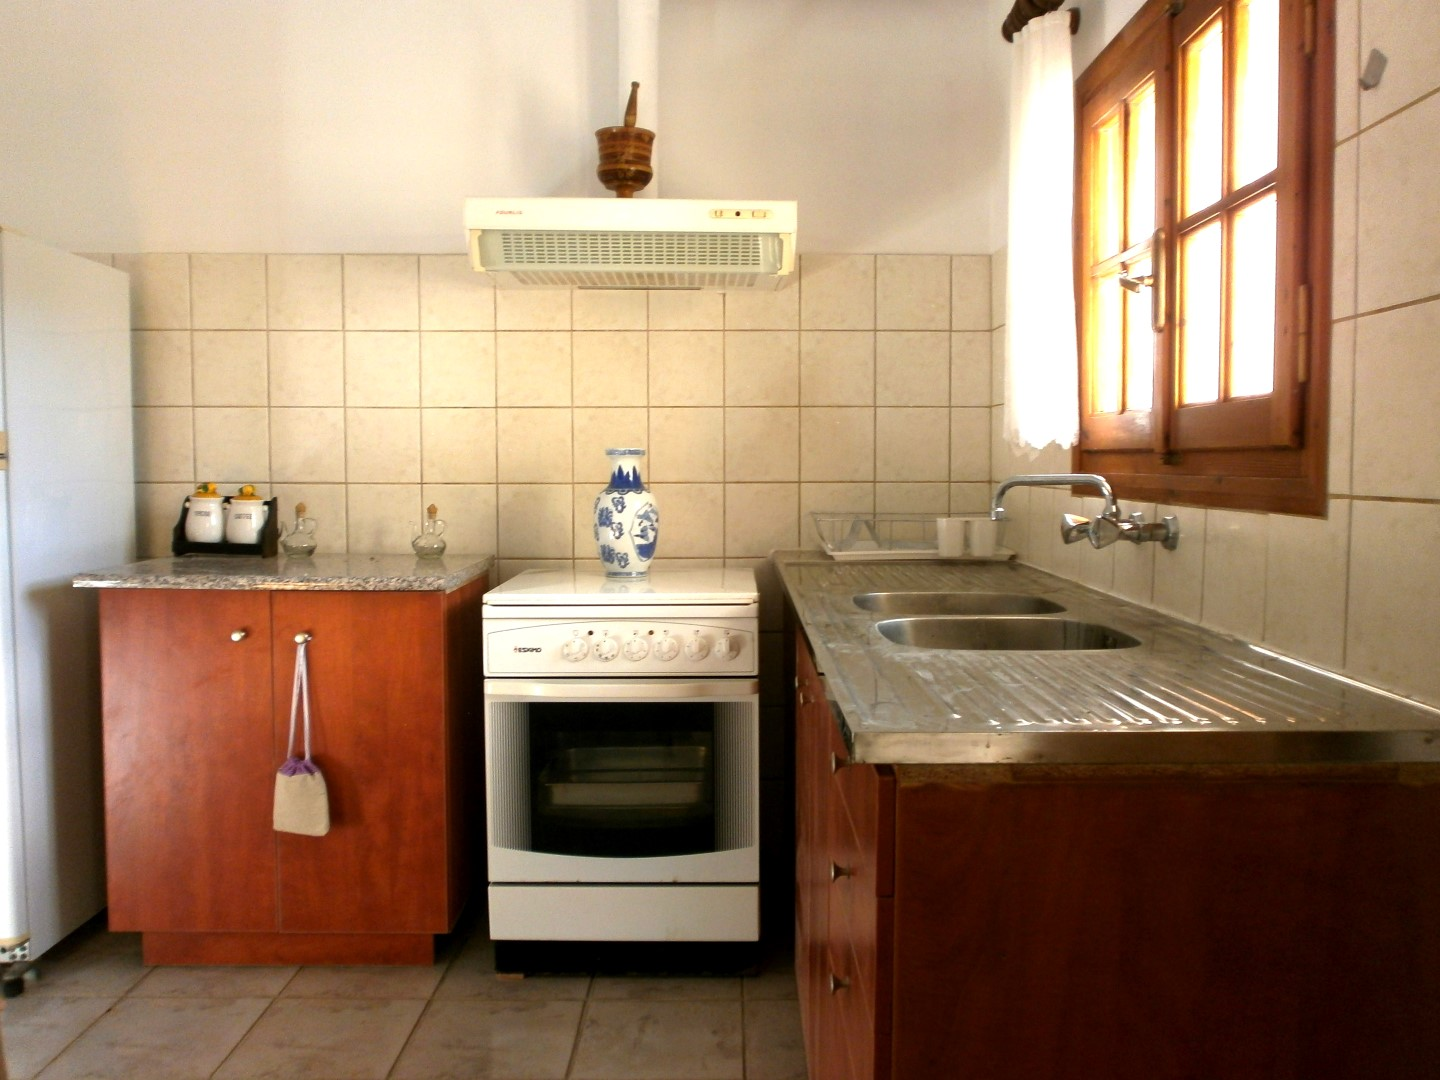 A kitchenette in every one room apartment with all the necessary utensils